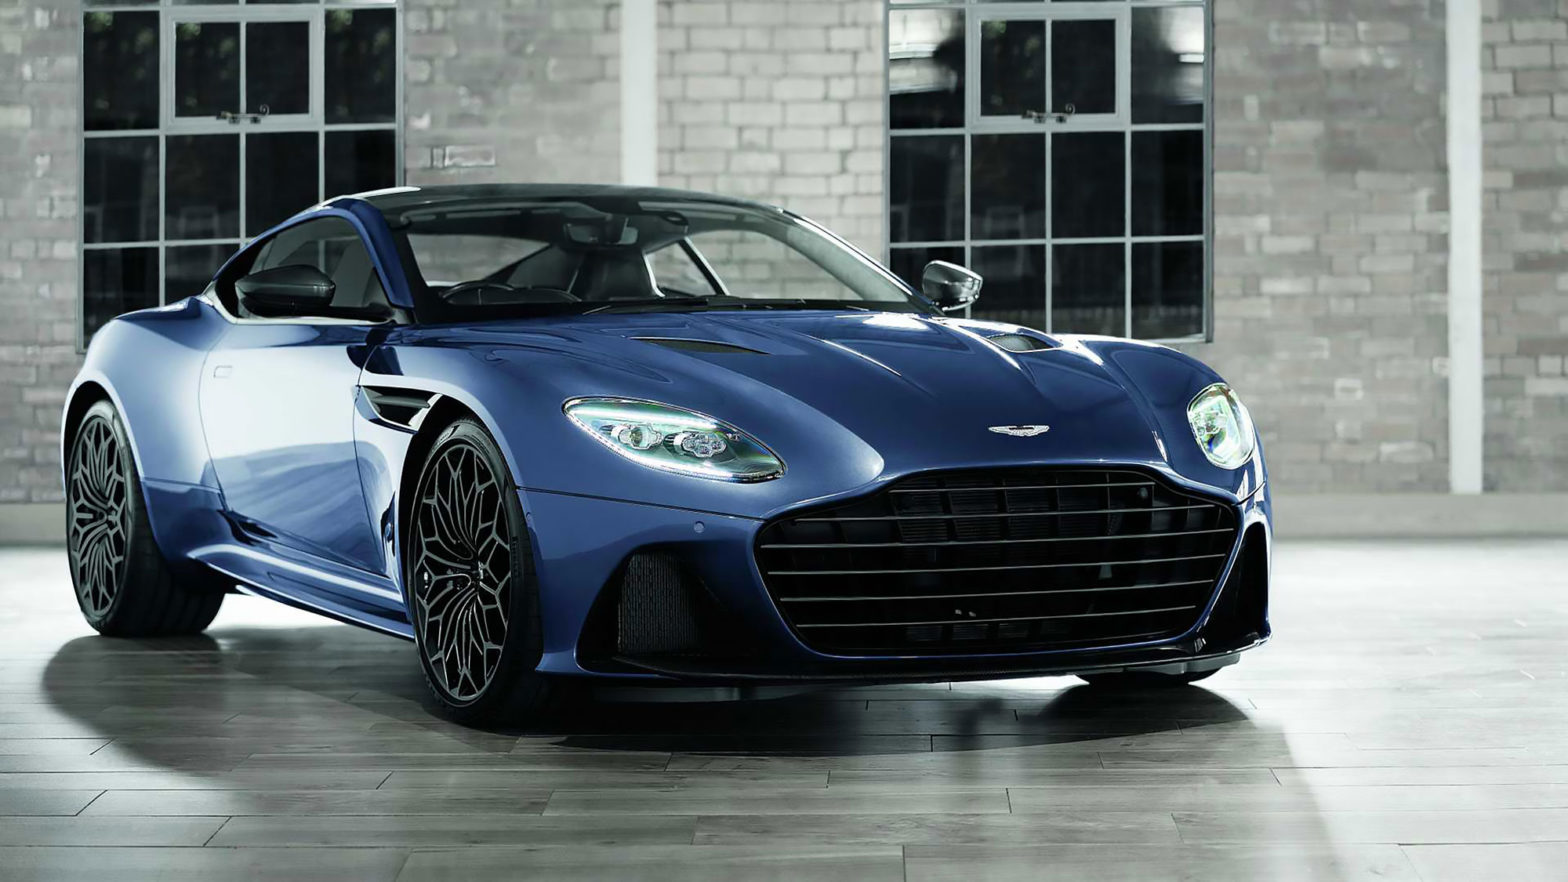 007 Aston Martin Designed by Daniel Craig